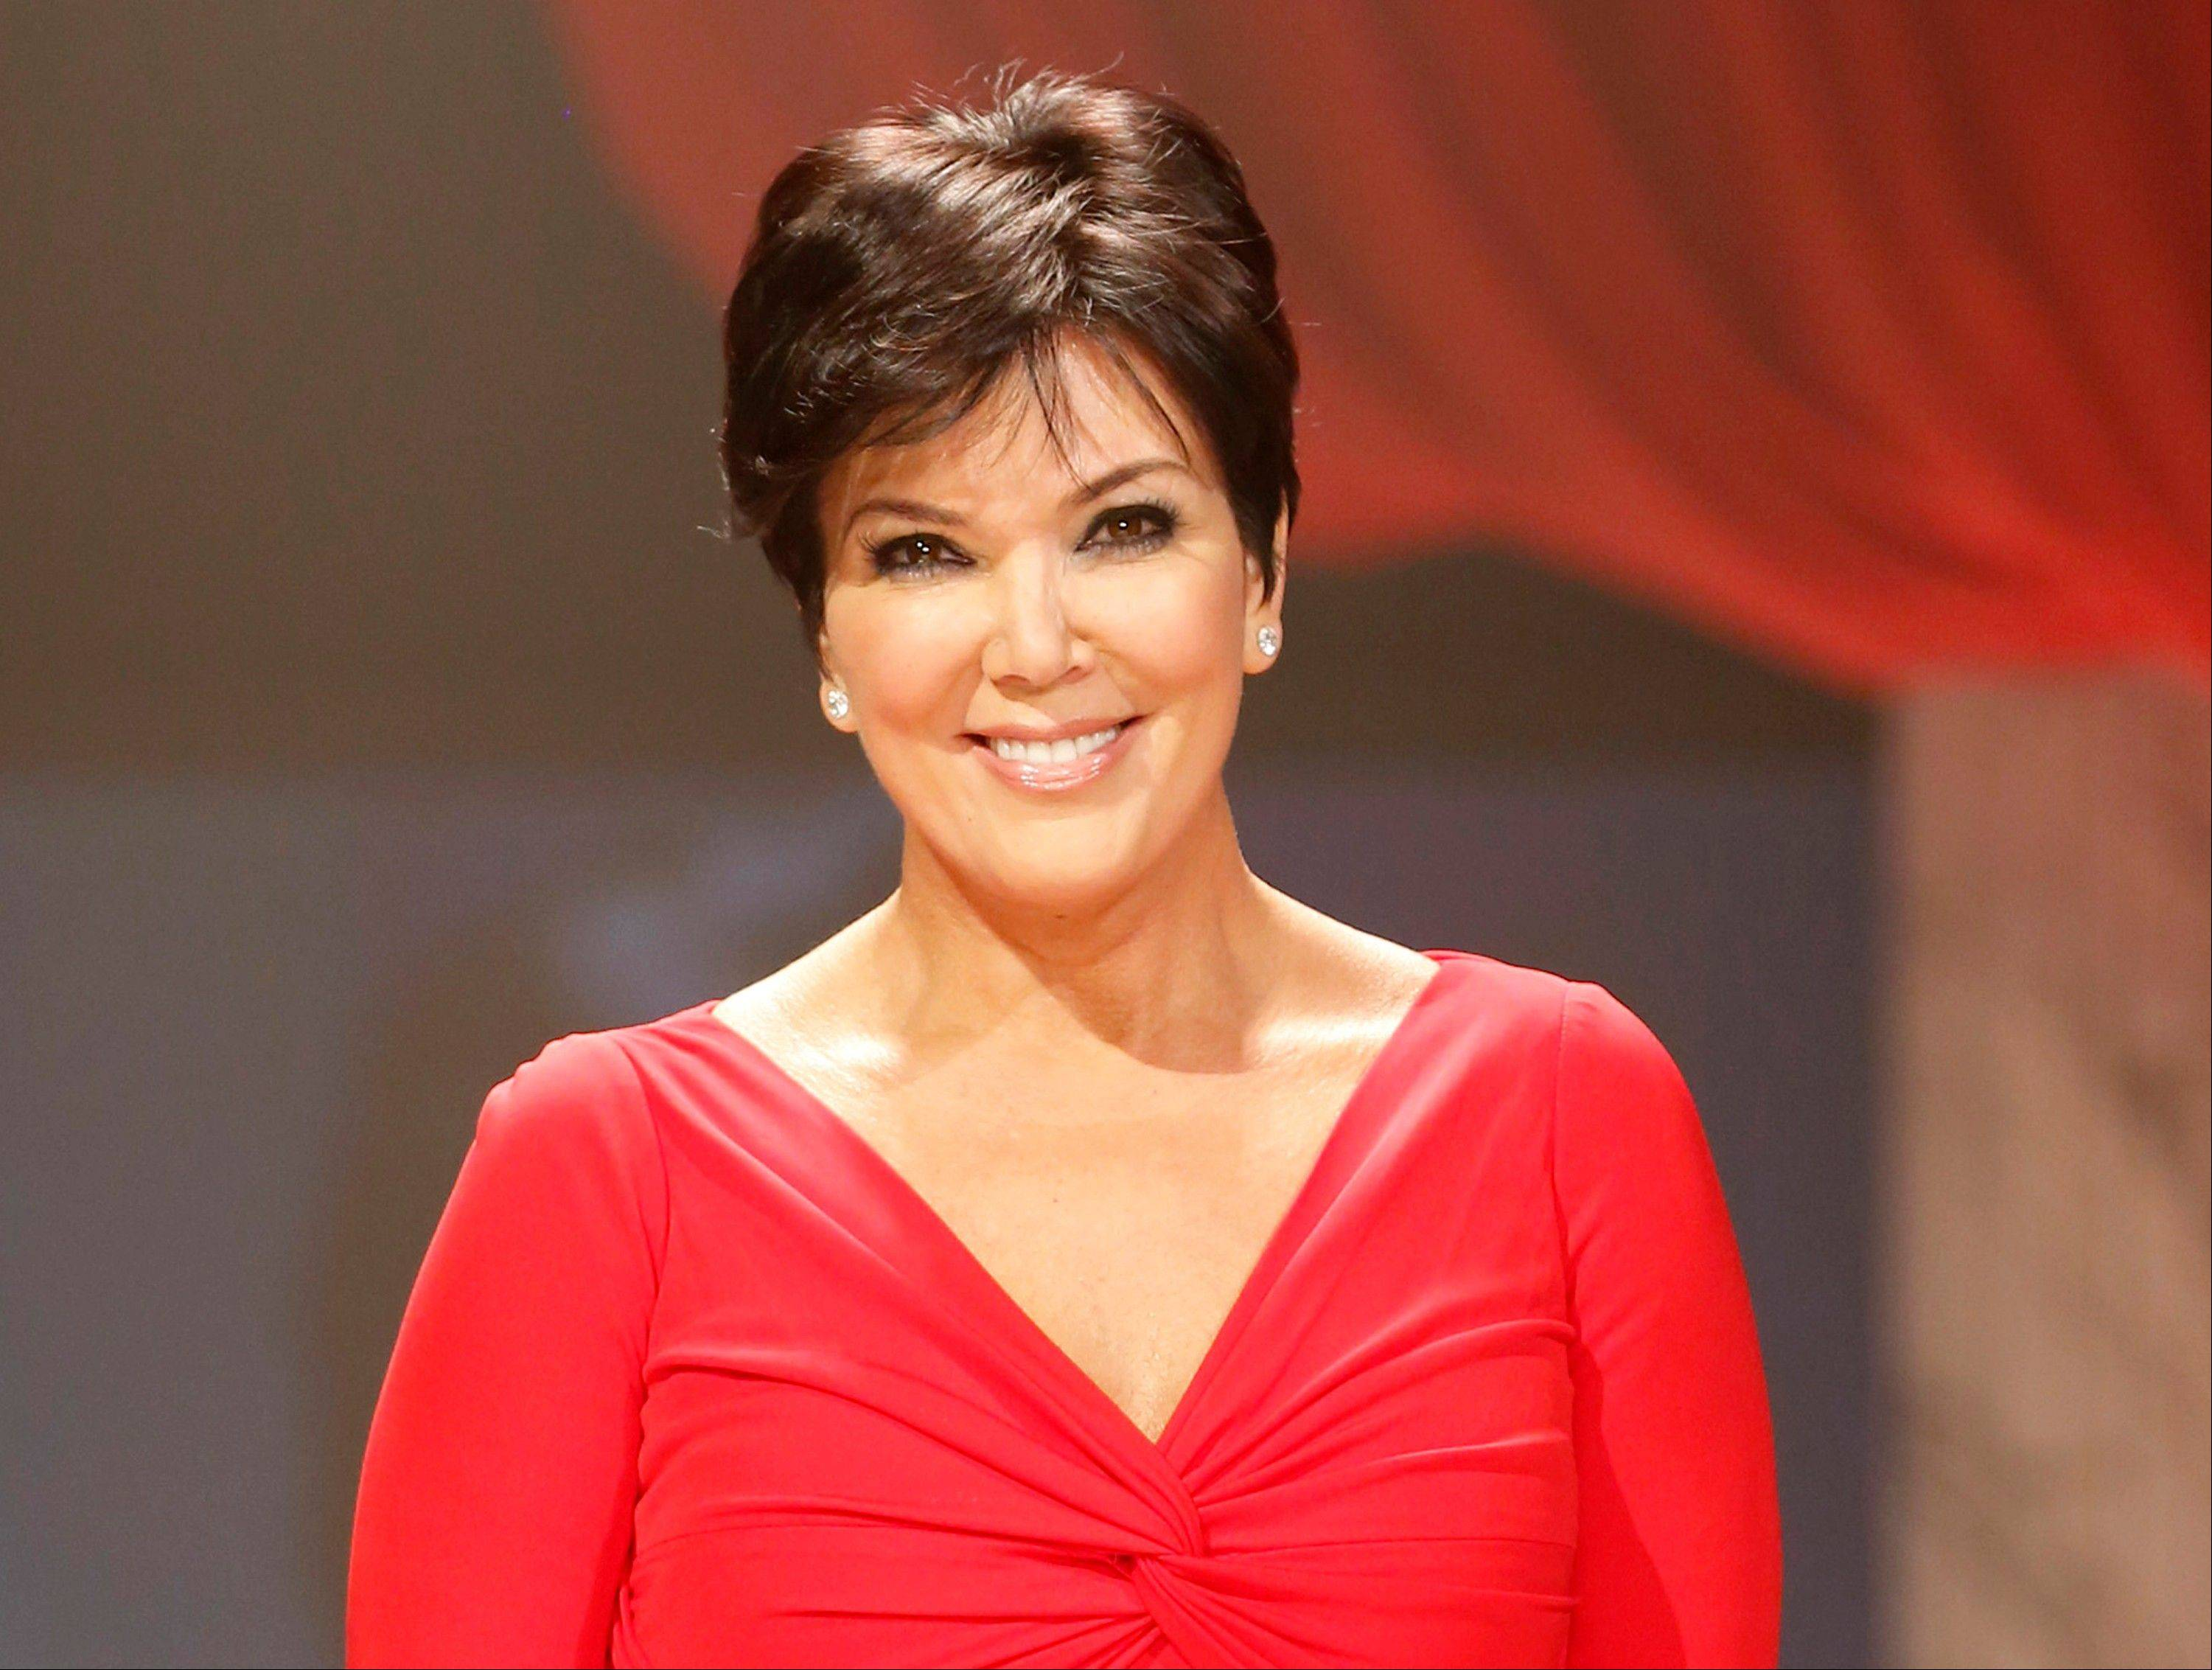 The studio behind Kris Jenner�s new daytime talk show, �Kris,� says it will launch the program starting July 15.